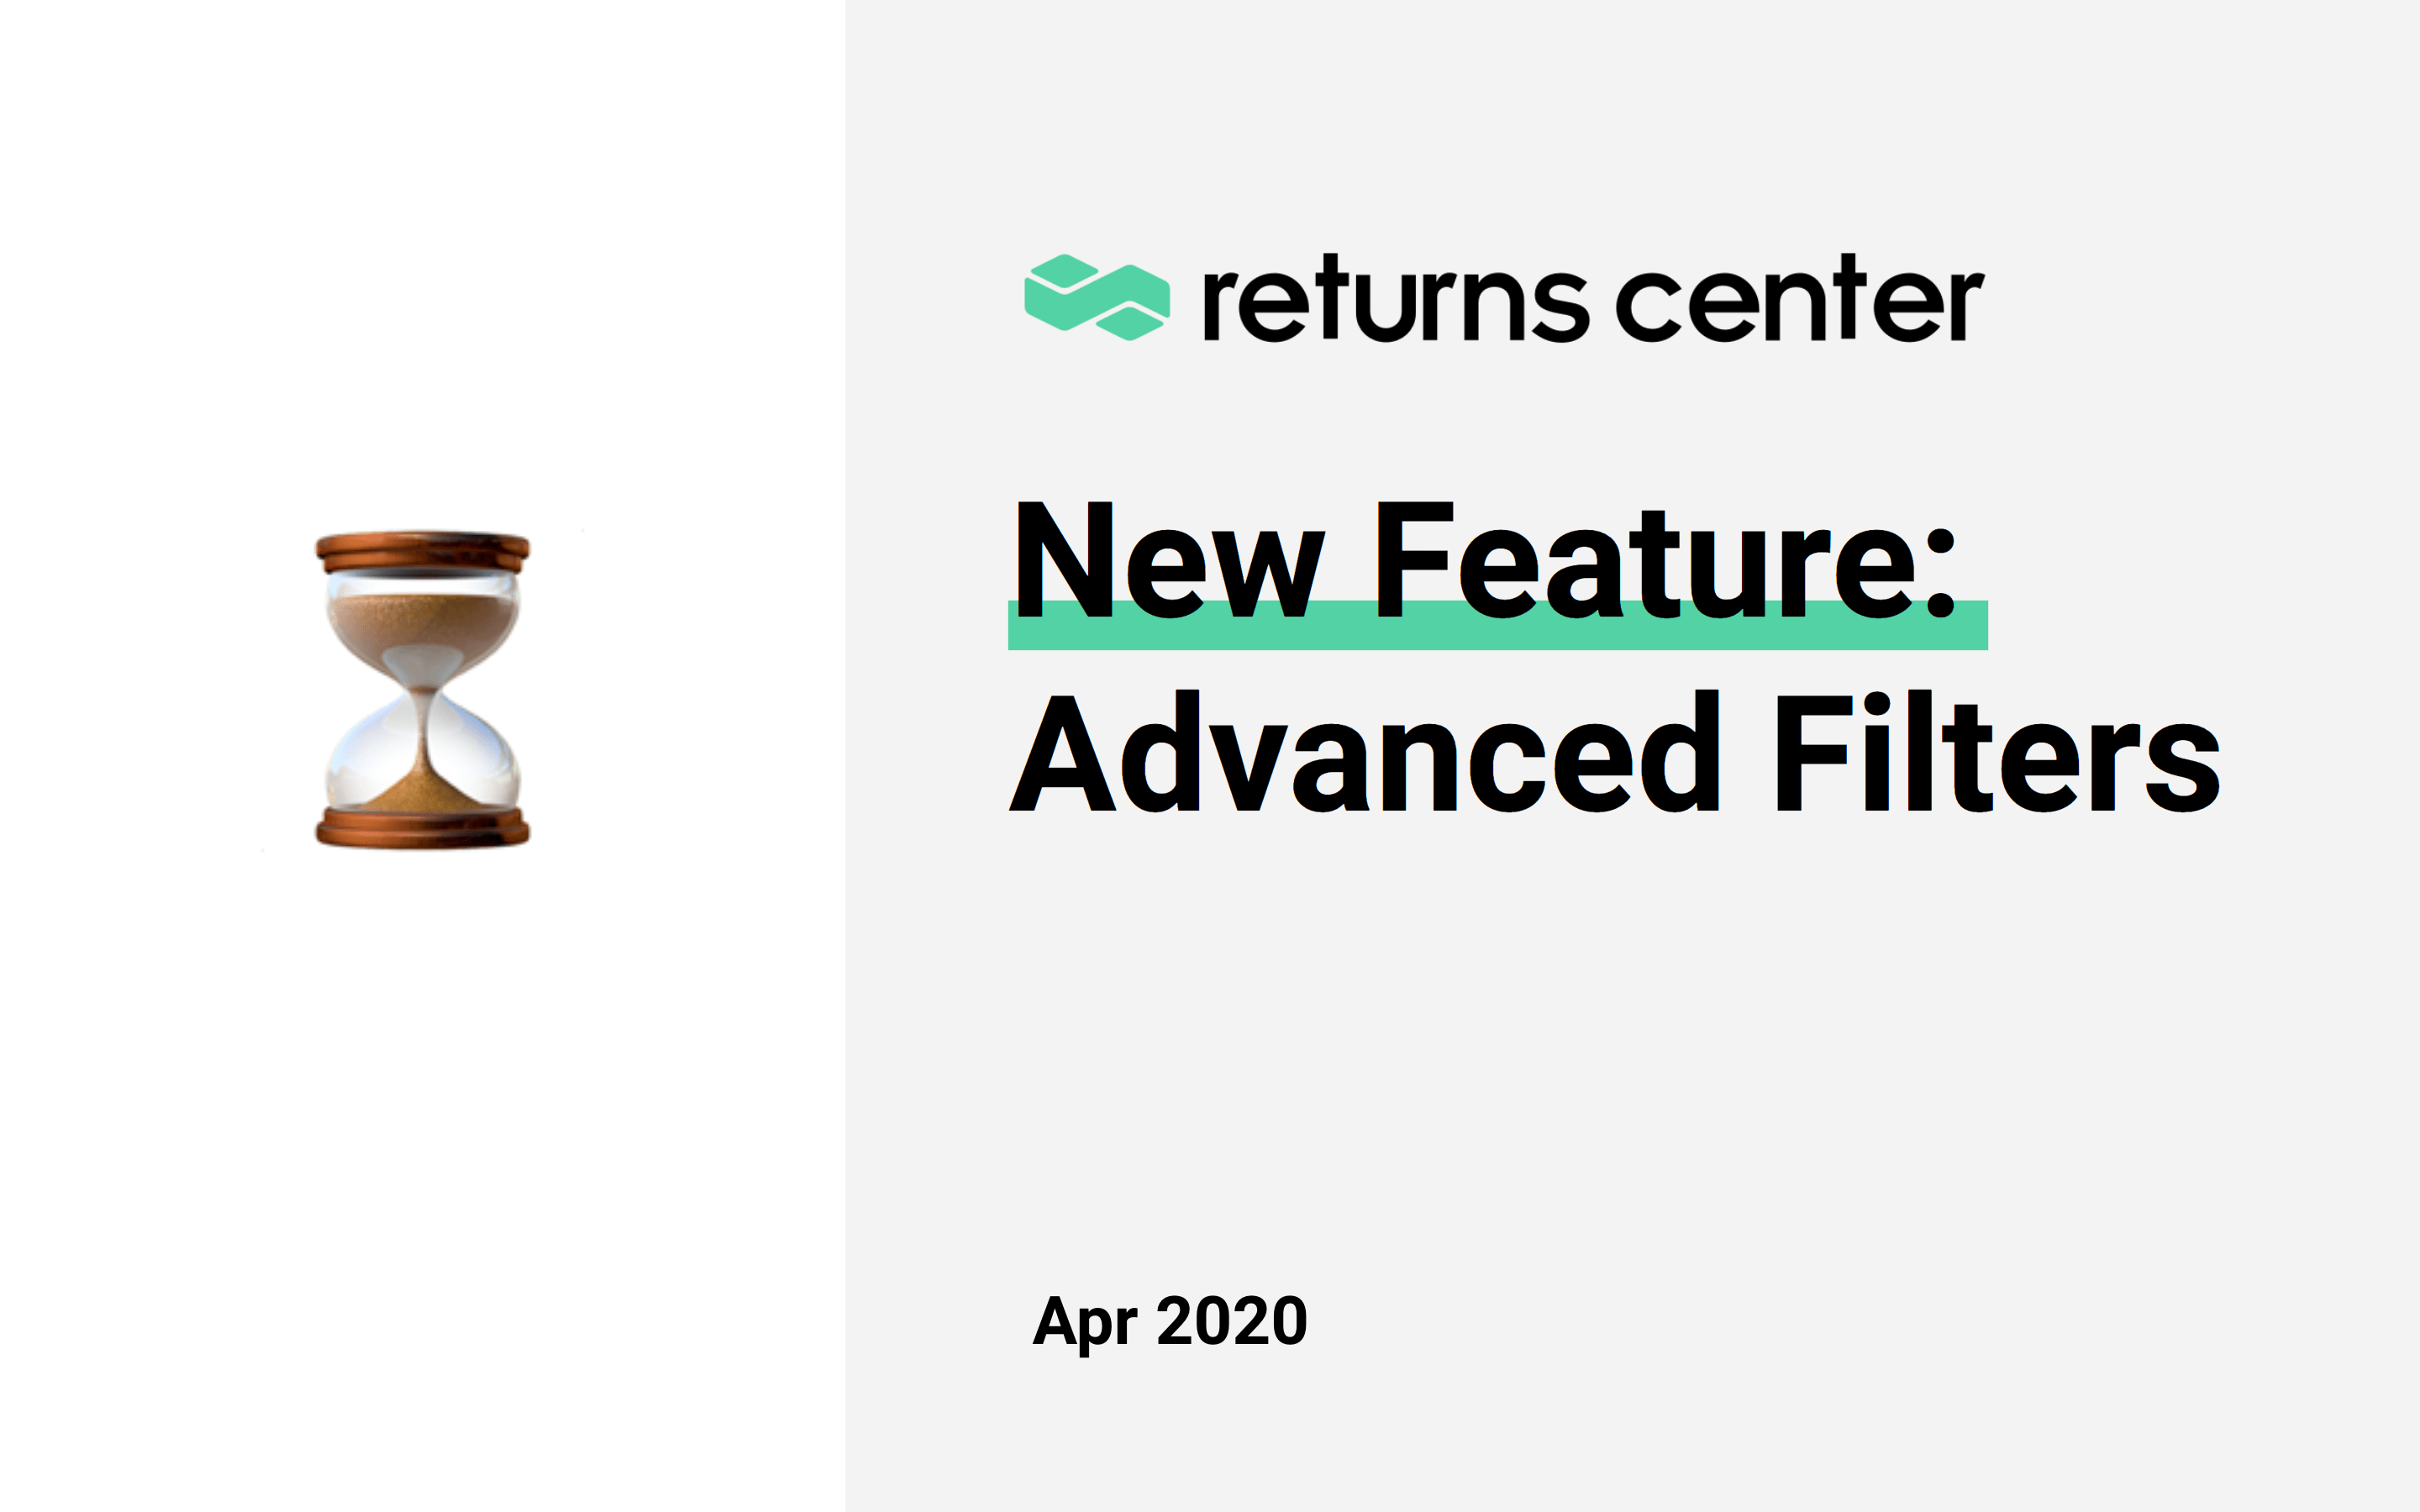 New Feature: Advanced Filters